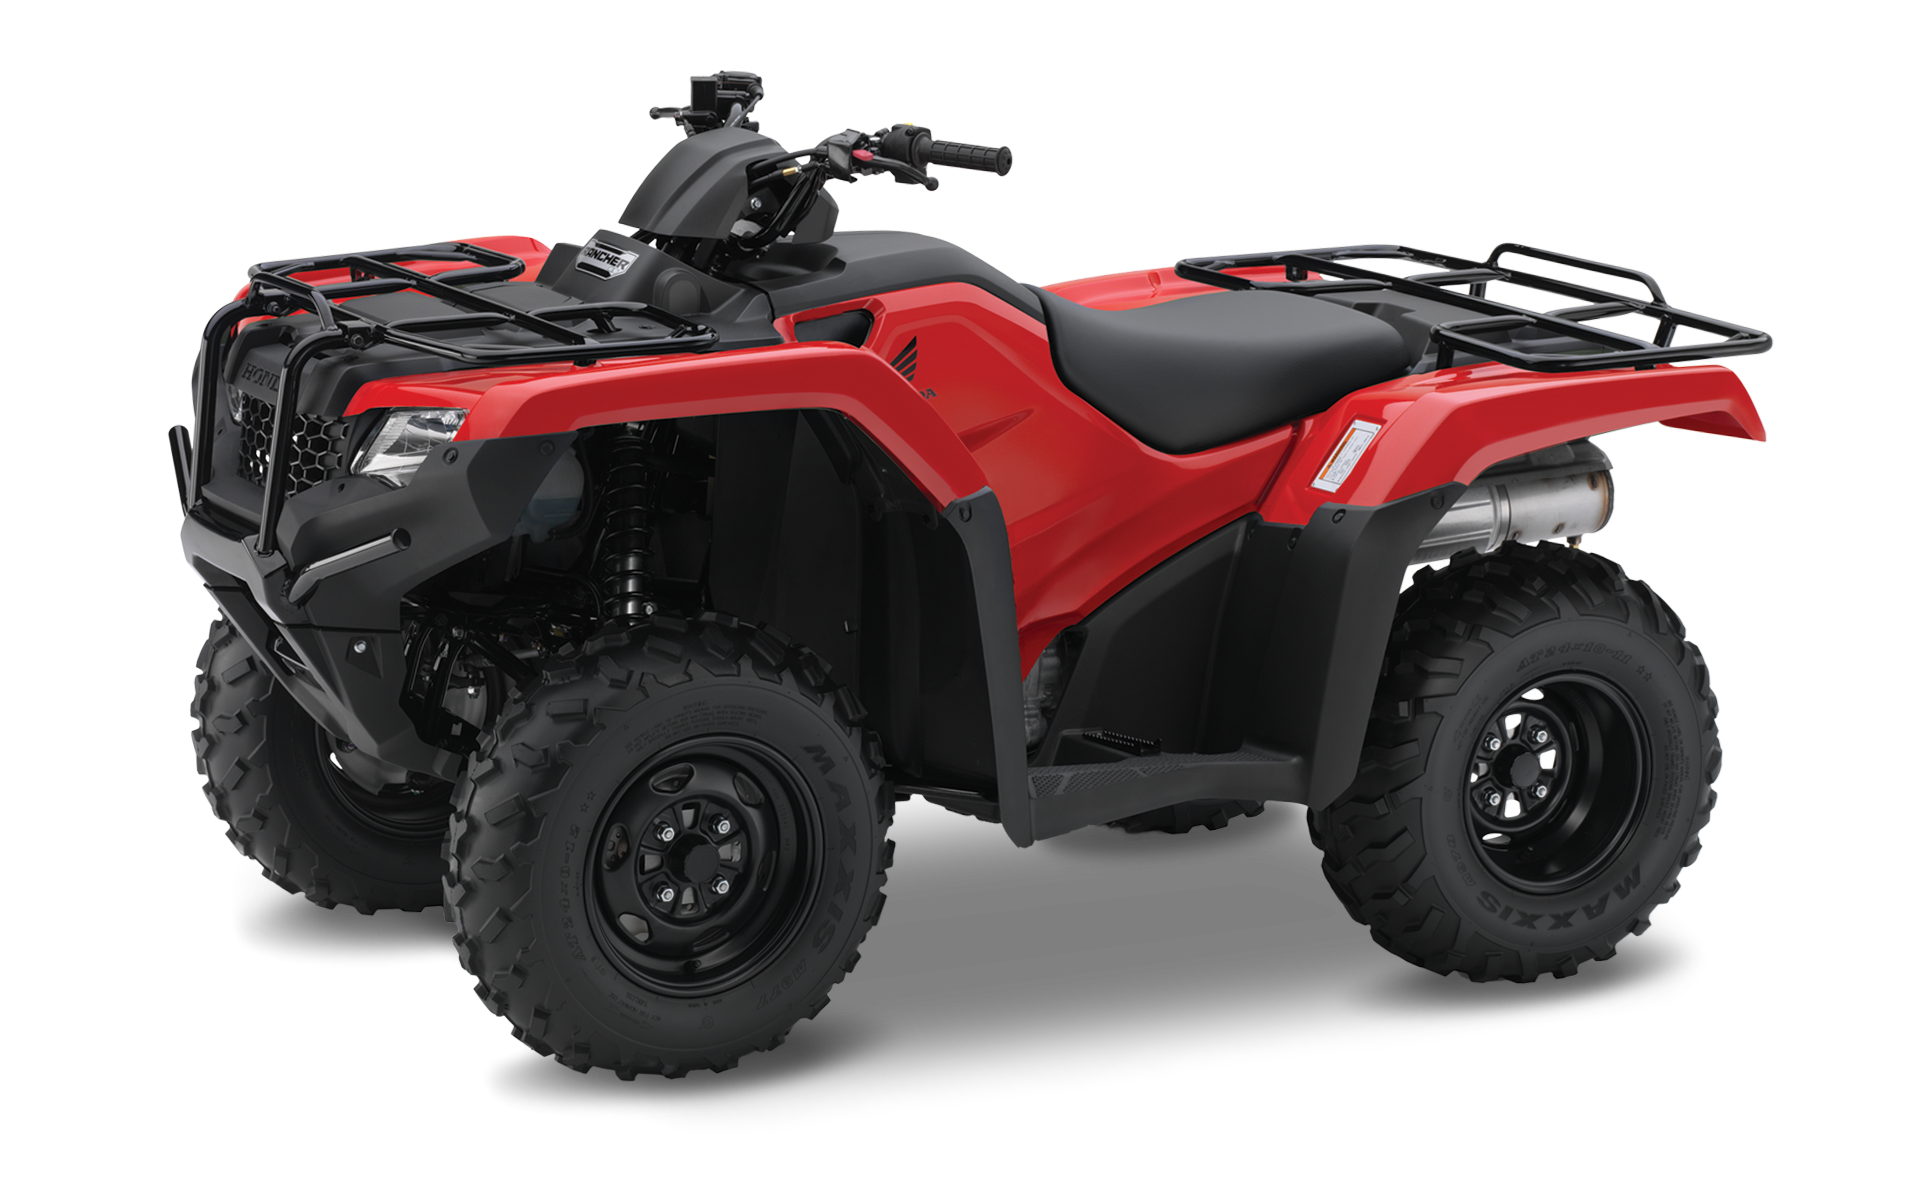 TRX420 Rancher > Honda ATV & Side-by-Side Canada